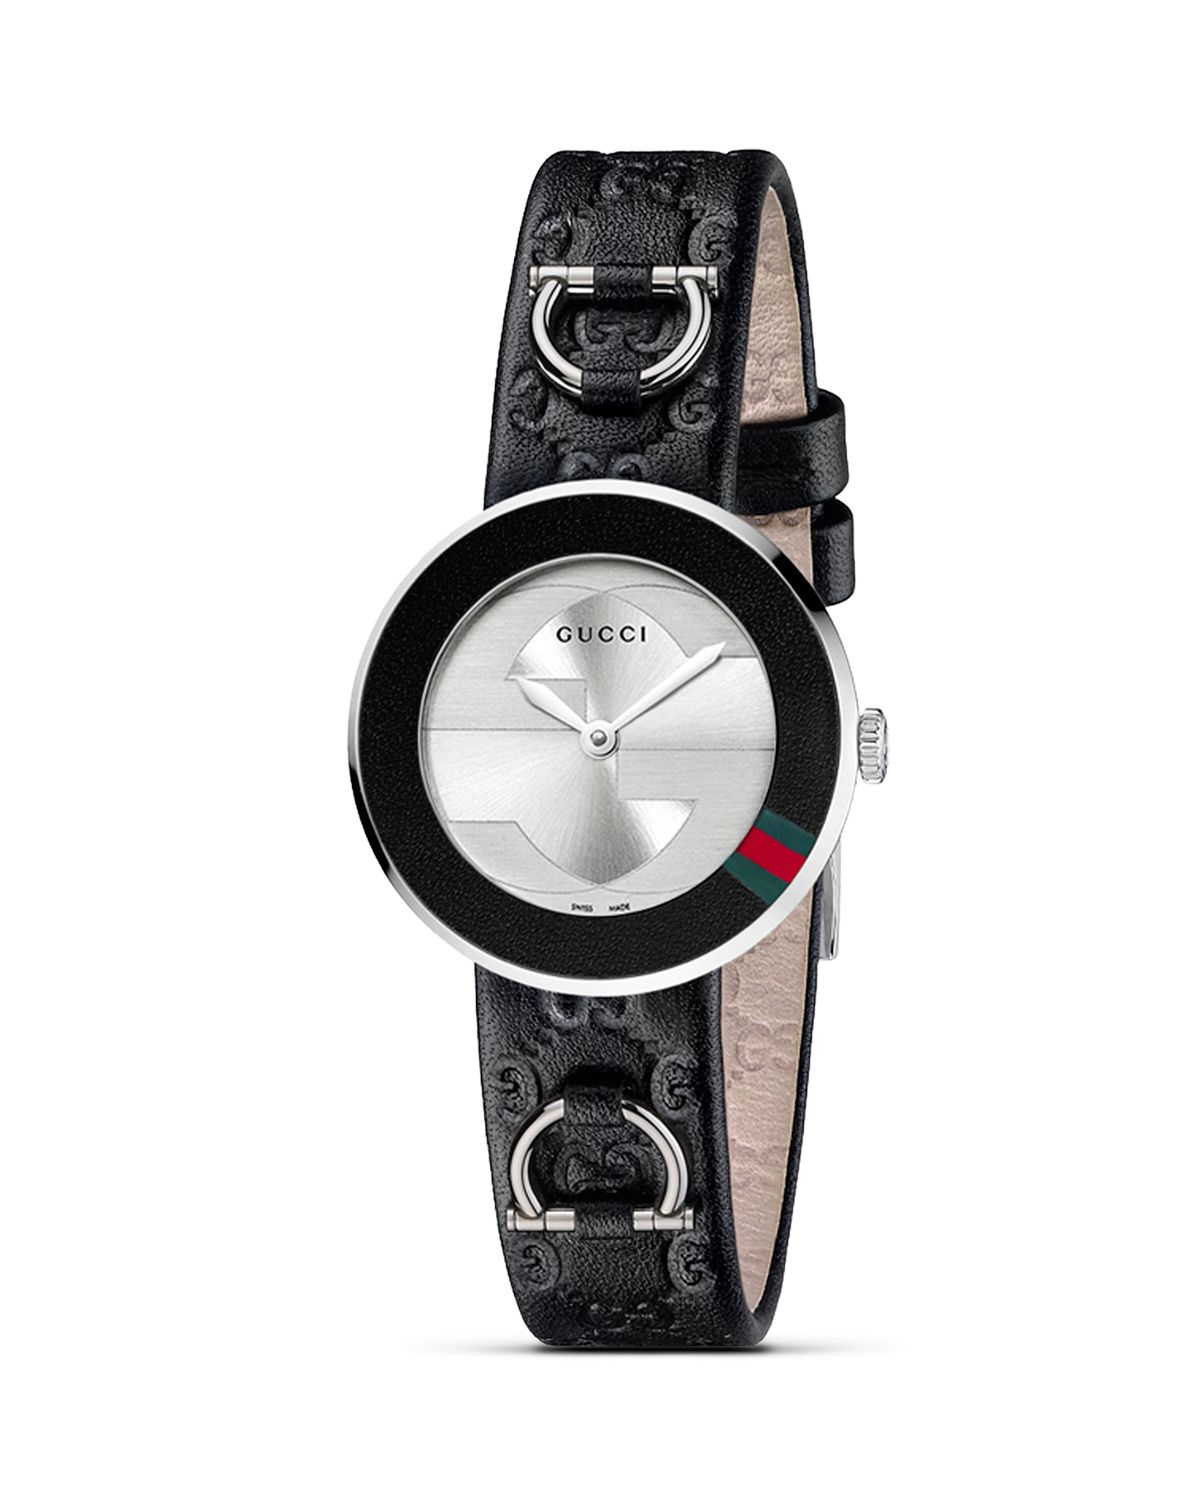 15e15af385c Gucci uplay watch